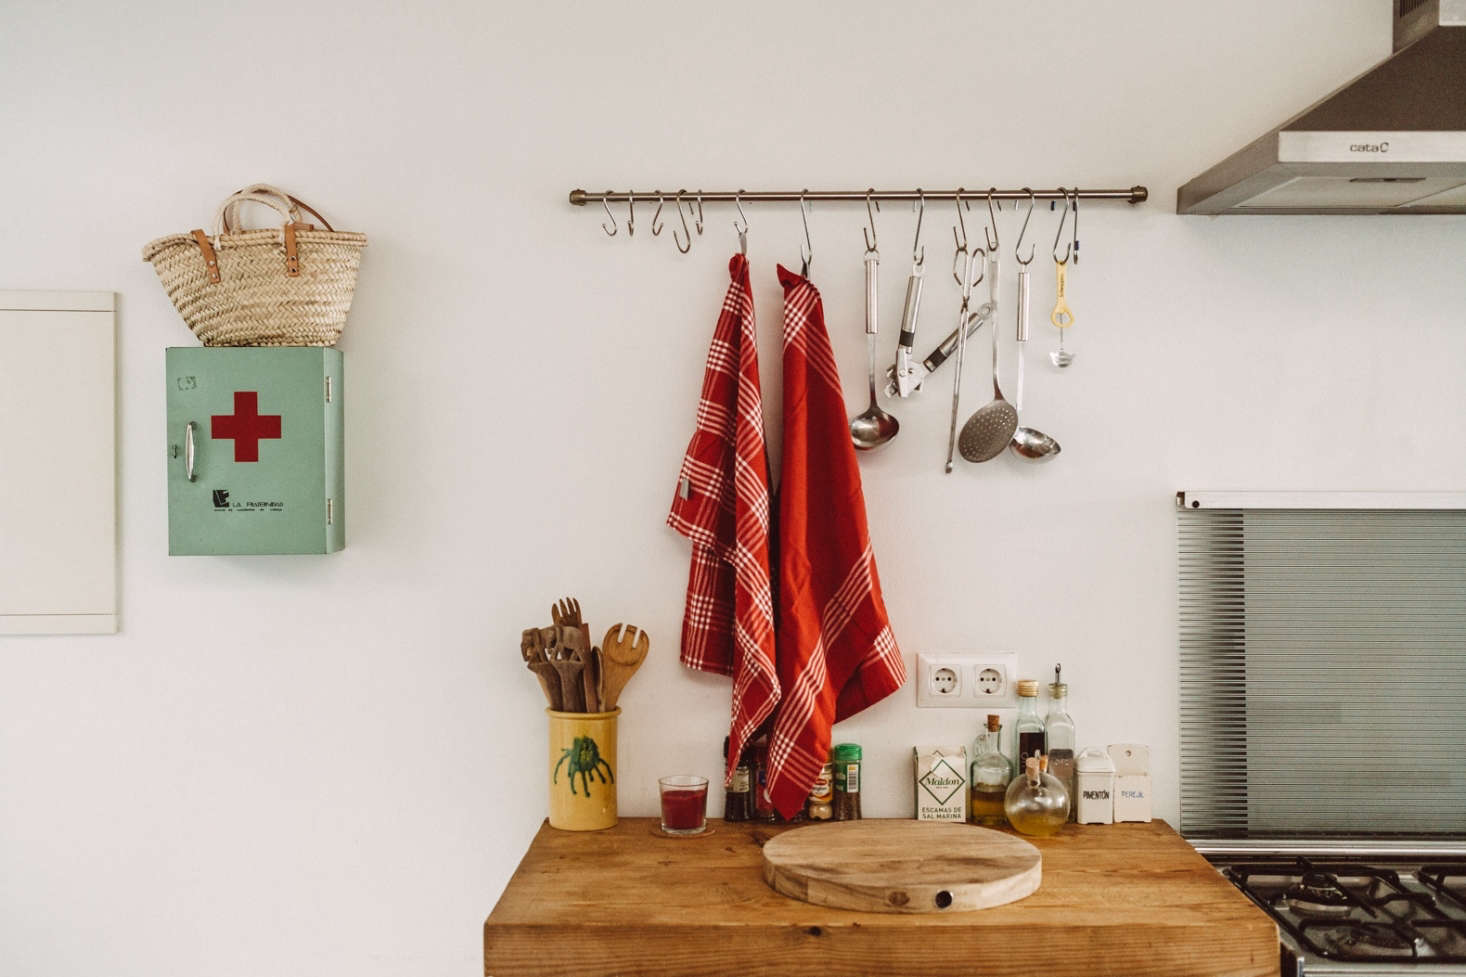 In a formerly kitchenless structure that Benito and Pol renovated for themselves, they hung an Ikea Grundtal Rail as a utensil rack over the chopping board.